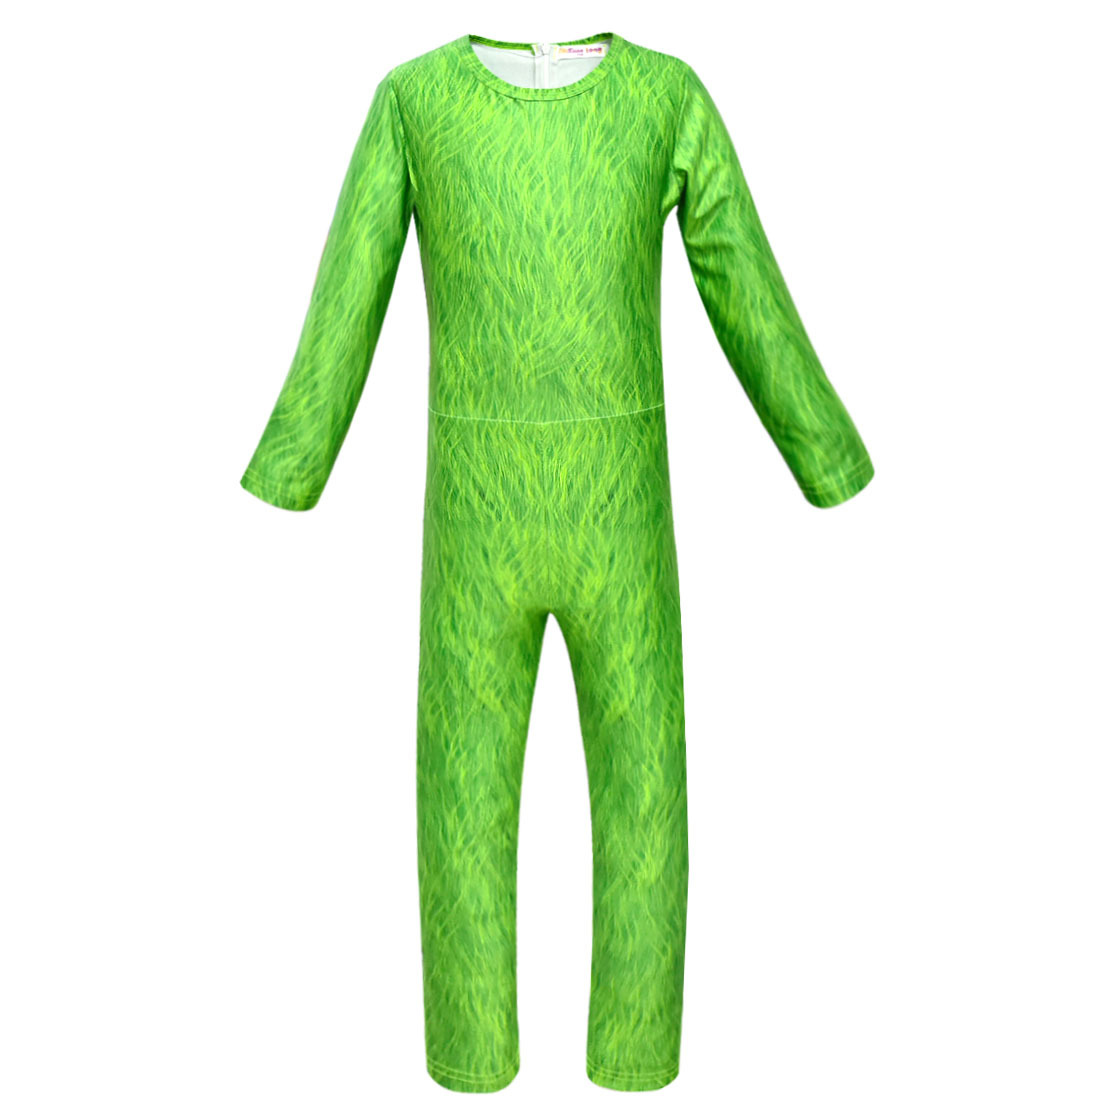 Kids Halloween Girls Boys Green Cartoon Jumpsuit Christmas Gift